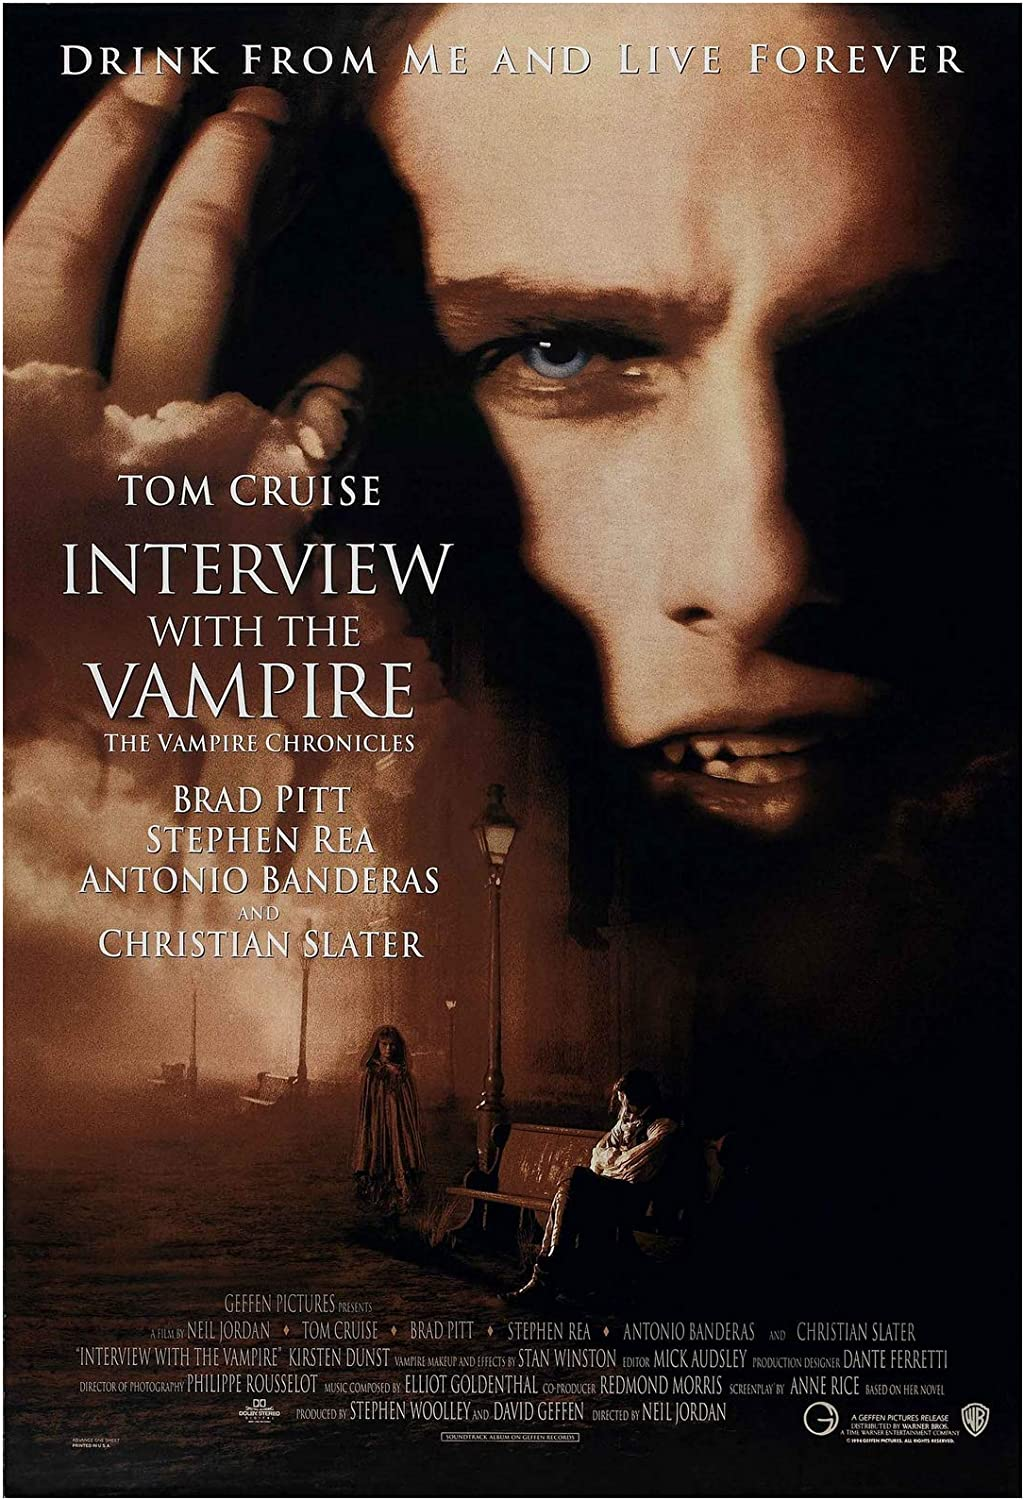 Interview with The Vampire Movie Poster 24 x 36 Inches Full Sized Print Unframed Ready for Display